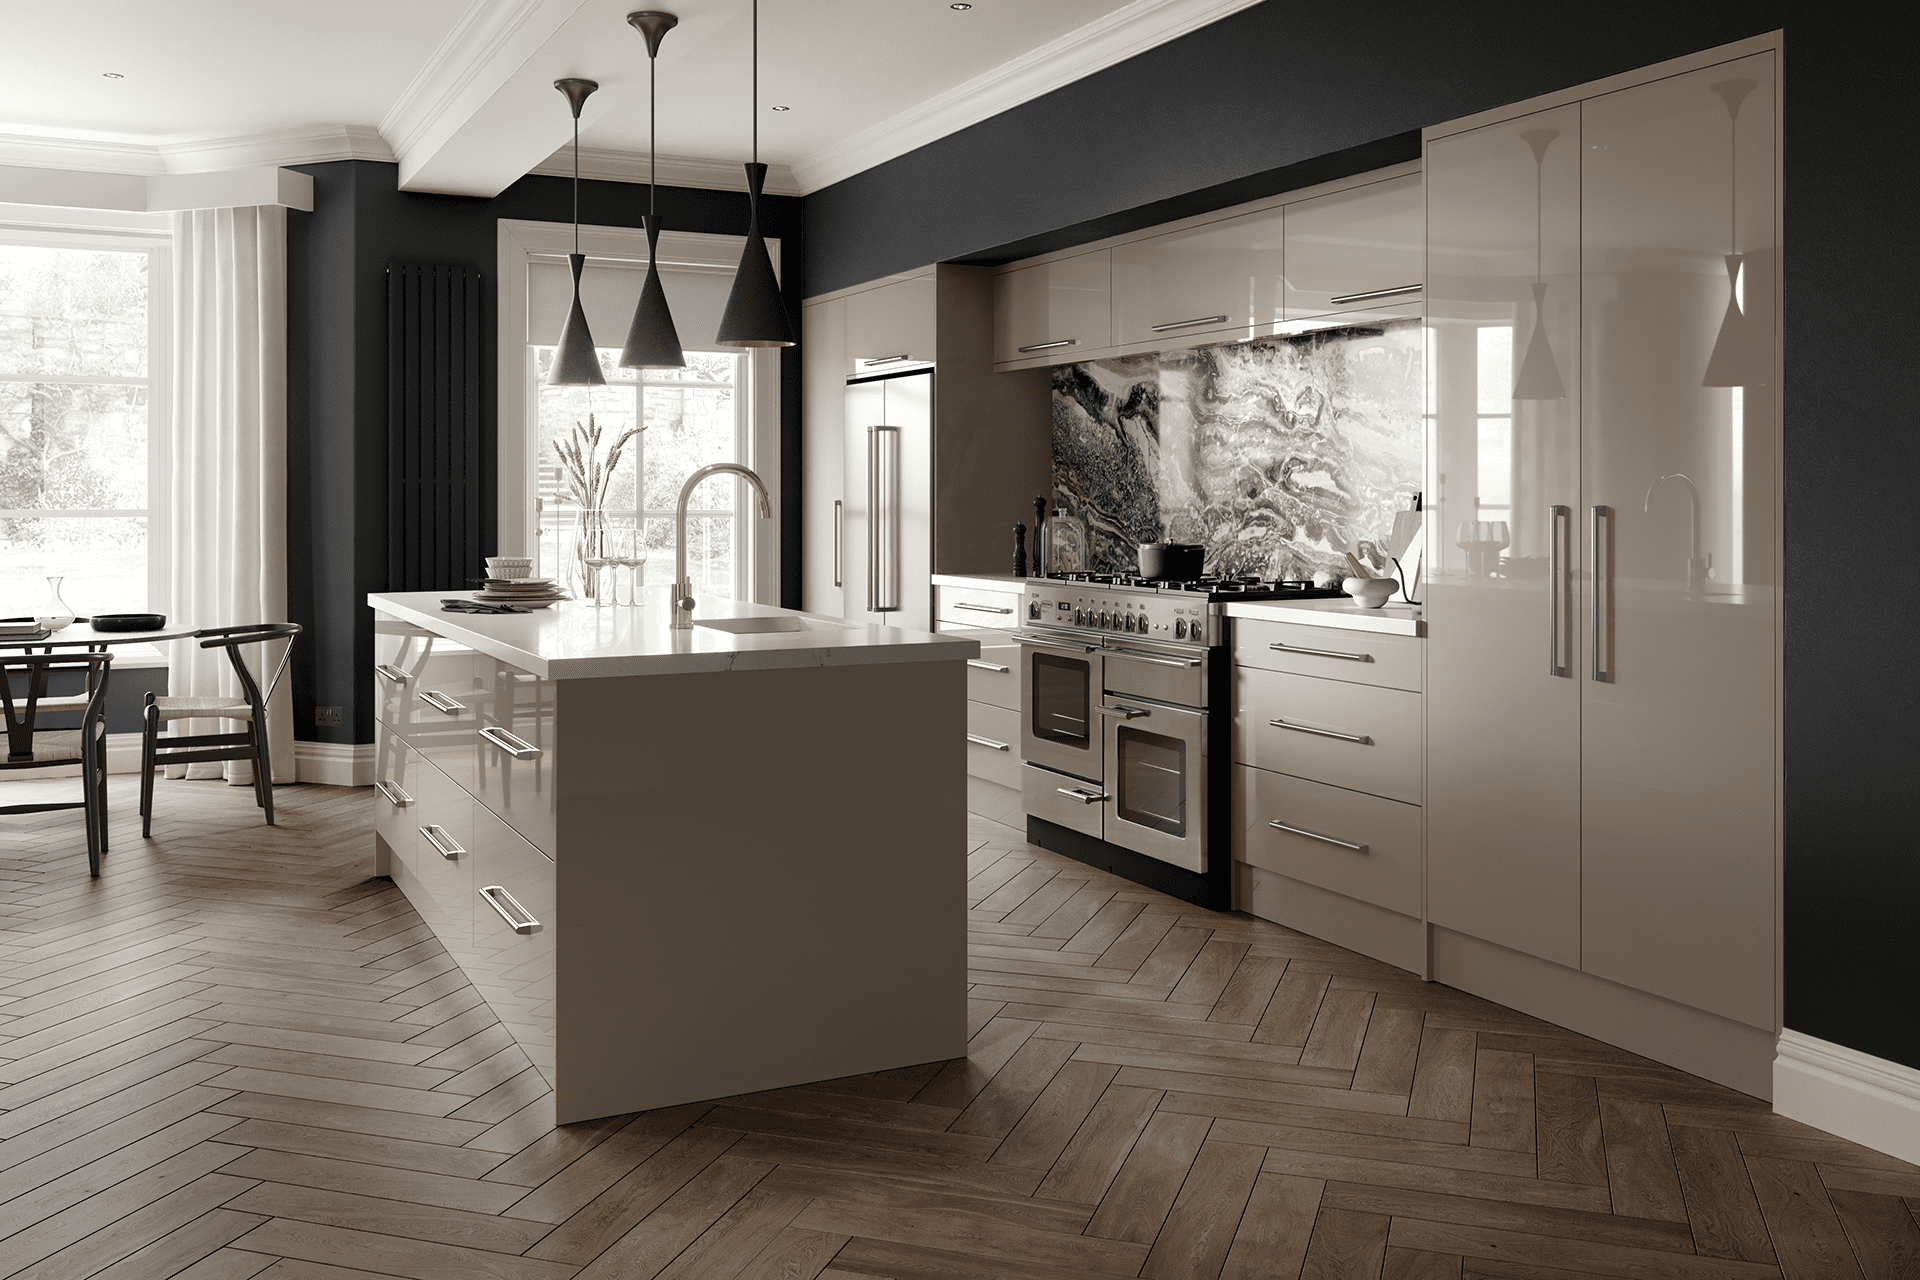 Blossom Avenue Zurfiz Ultragloss Stone Grey Open Plan With Island | Right Choice Kitchens, South Wales